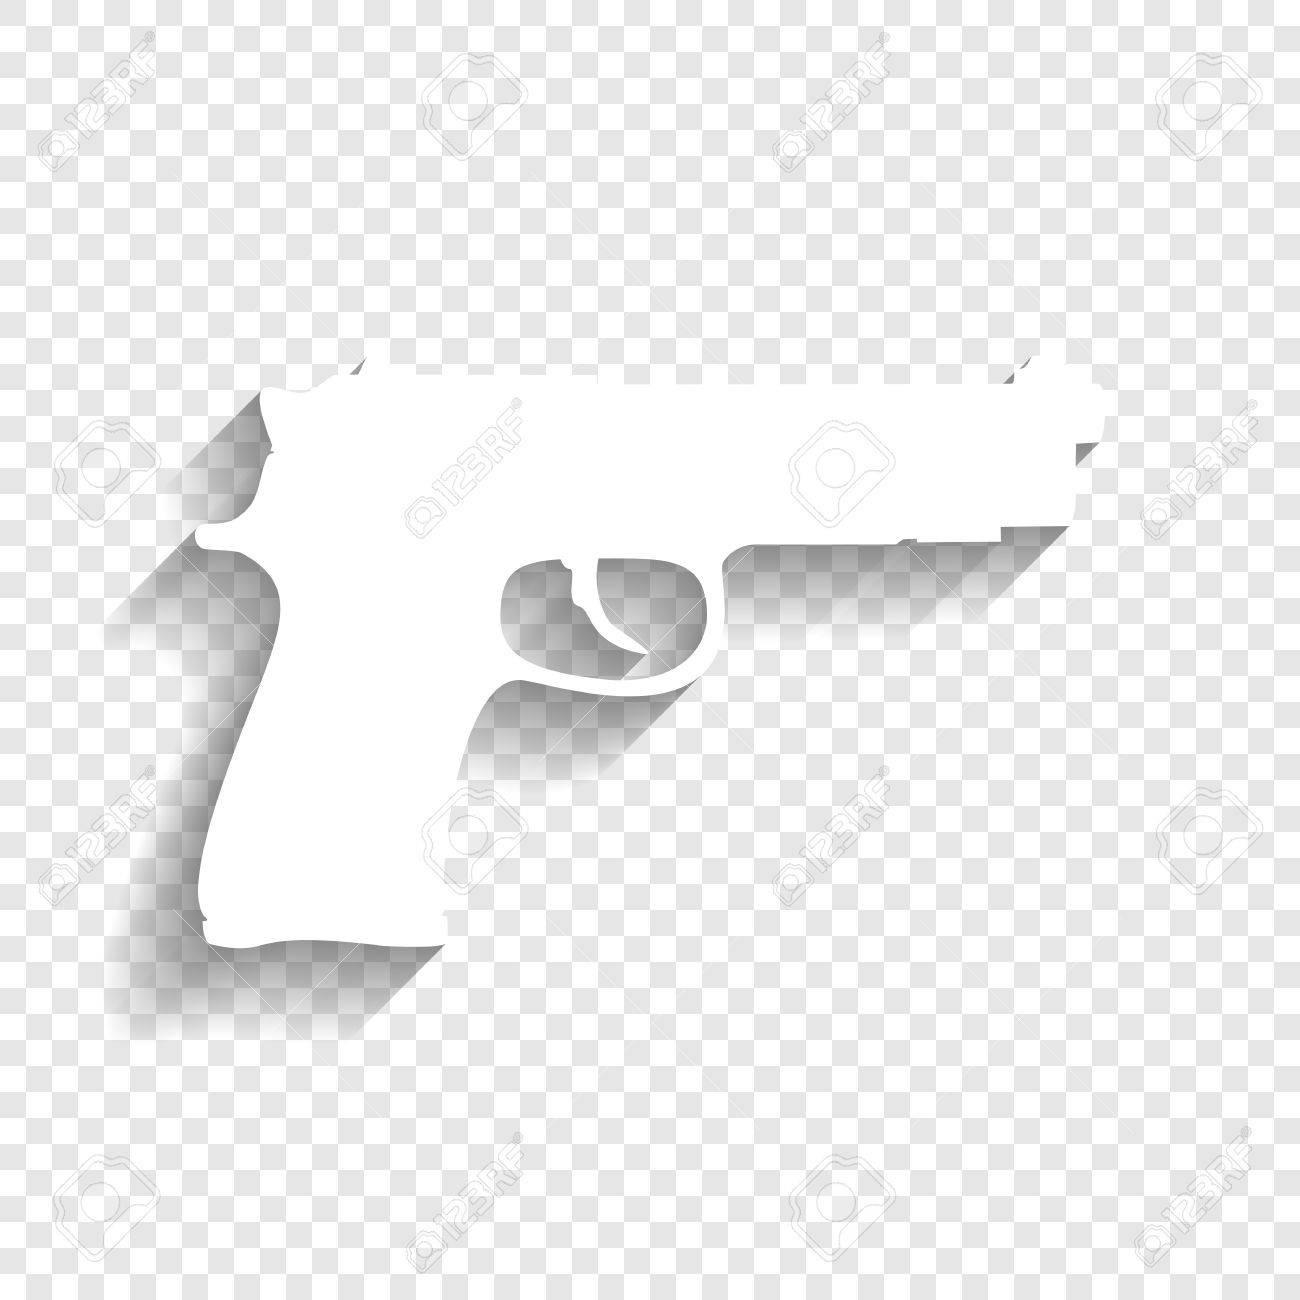 gun sign illustration vector white icon with soft shadow on